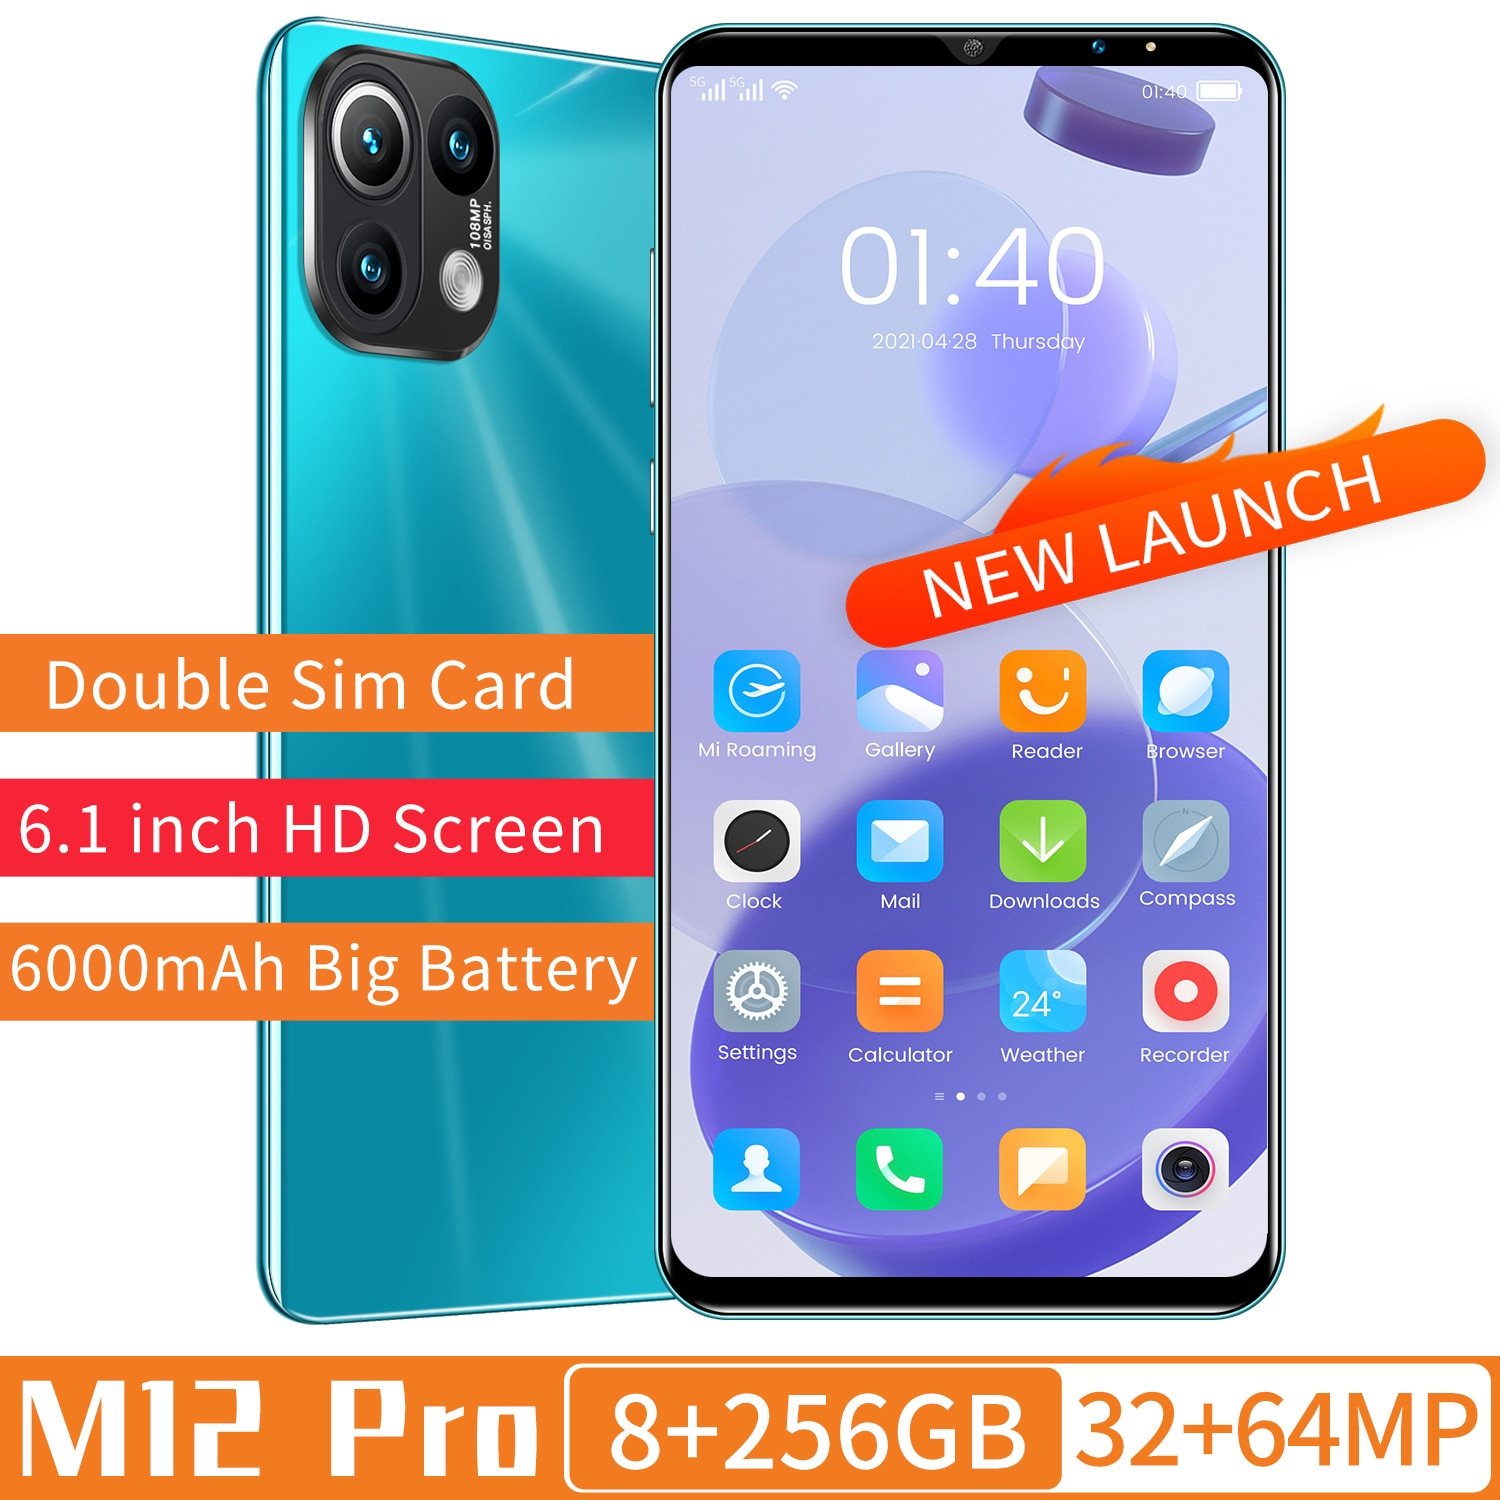 XIAOM12 Pro 1440*3200 8+256GB 6.1Inch Full Screen Android11 MTK6889 Deca Core 32+64MP Dual SIM Card 6000mAh Long Standby Face ID